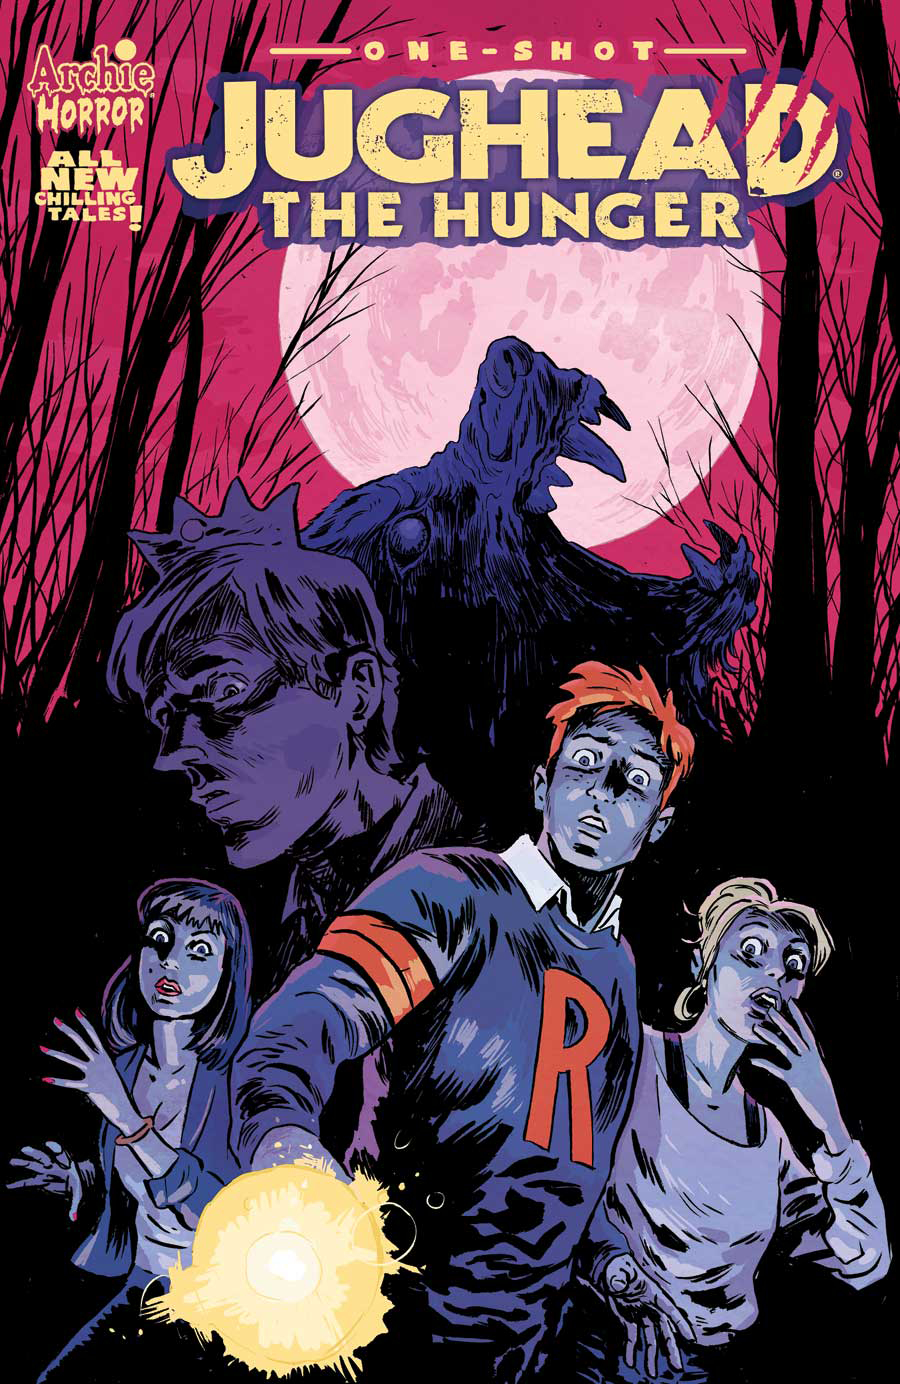 JUGHEAD THE HUNGER ONE SHOT CVR A MICHAEL WALSH